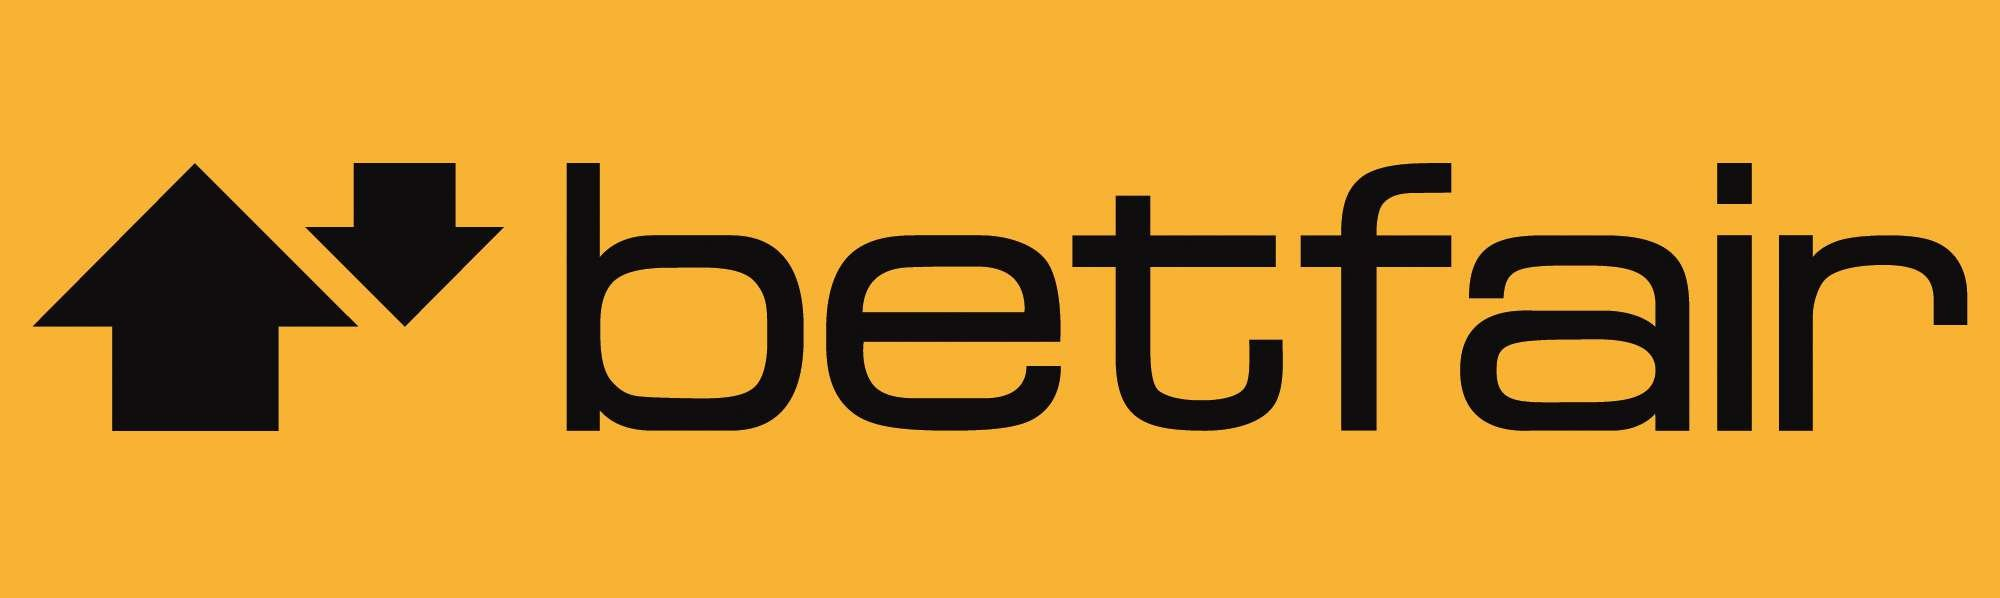 BETFAIR orange